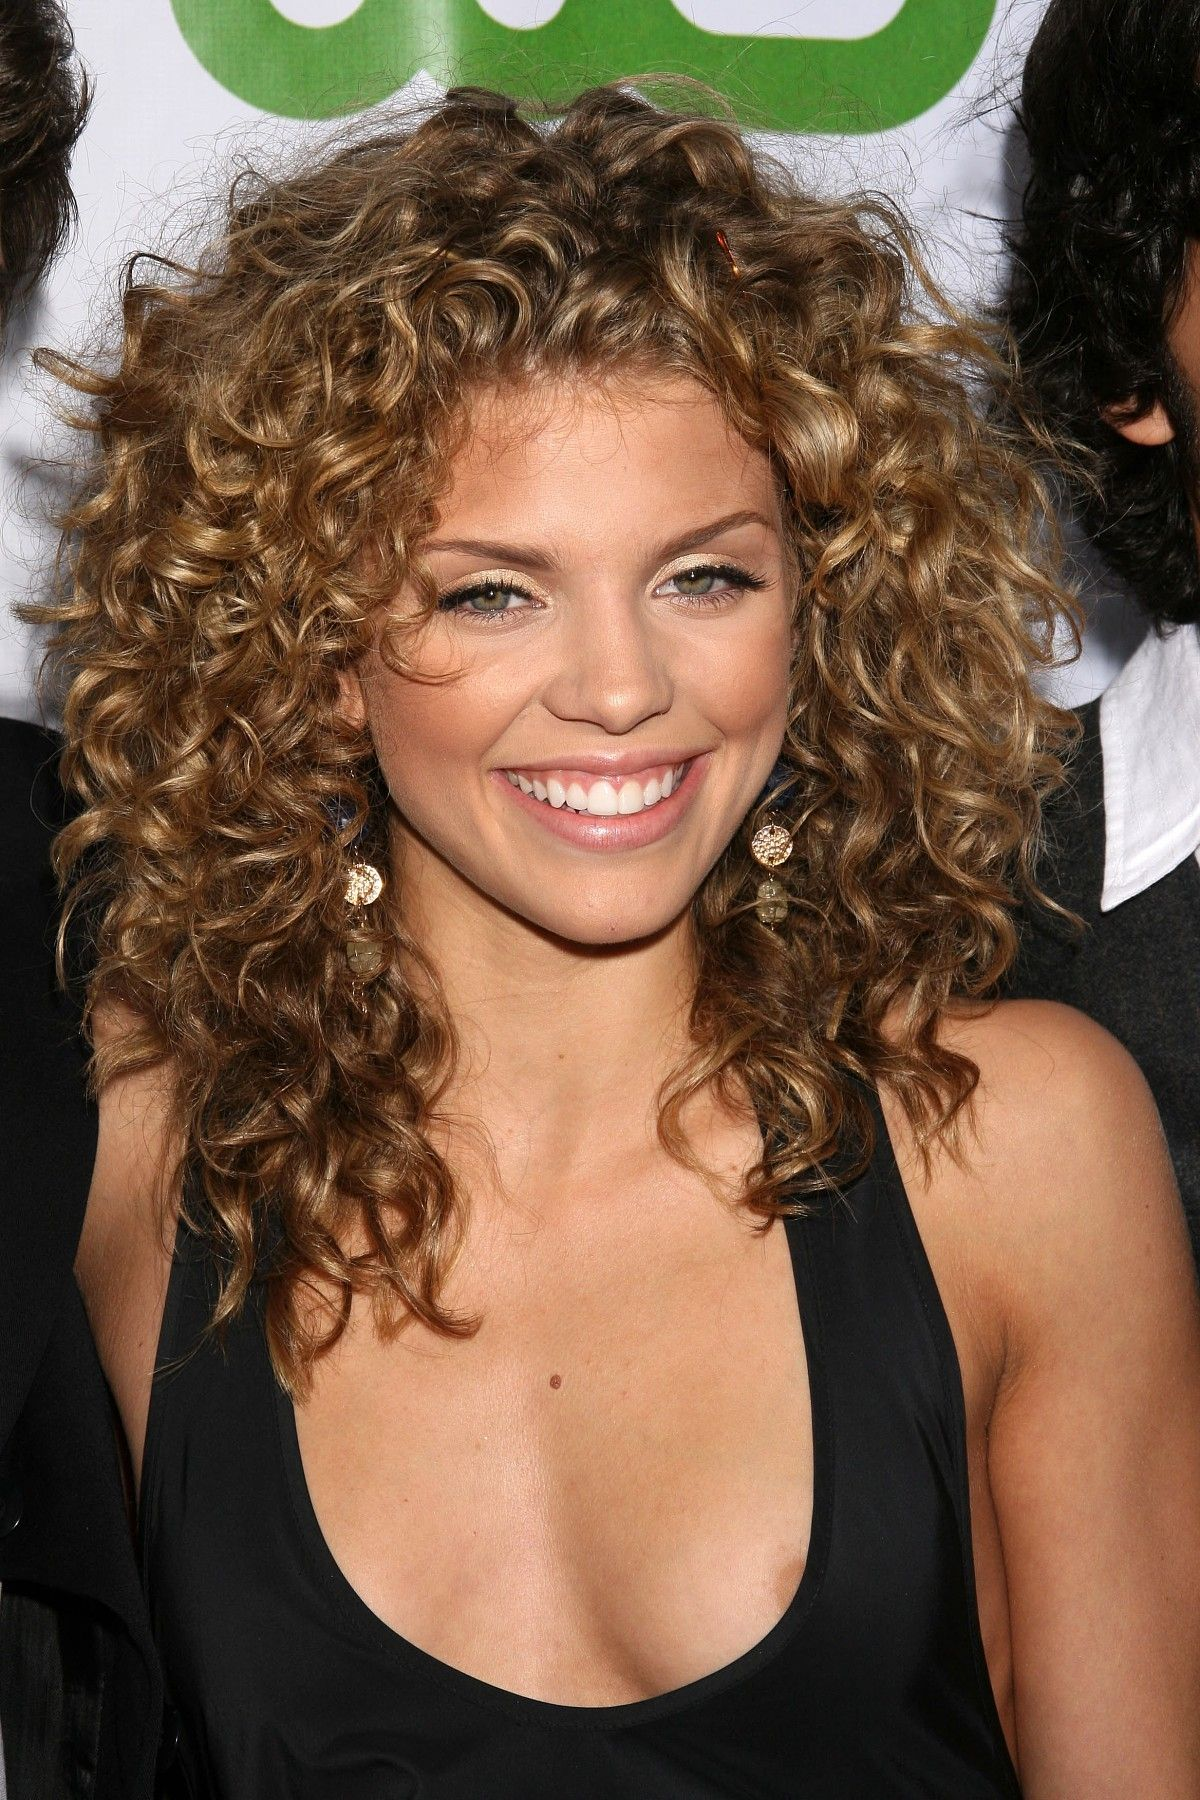 Awe Inspiring 1000 Images About Curly Hair On Pinterest Curly Hairstyles Short Hairstyles For Black Women Fulllsitofus